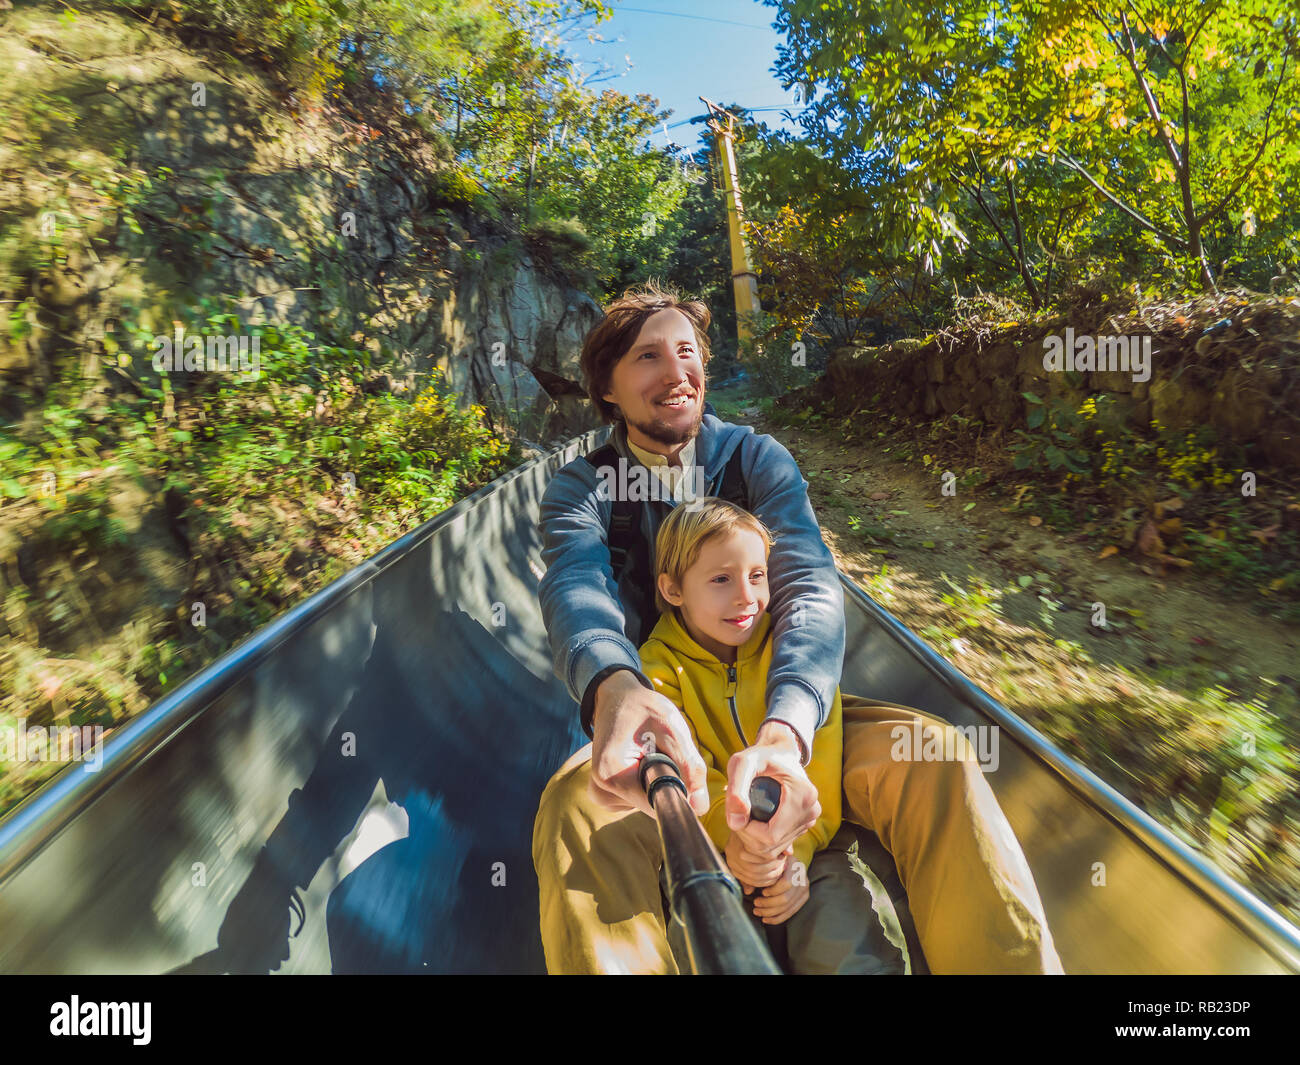 Dad and son have fun on alpine roller coaster - Stock Image